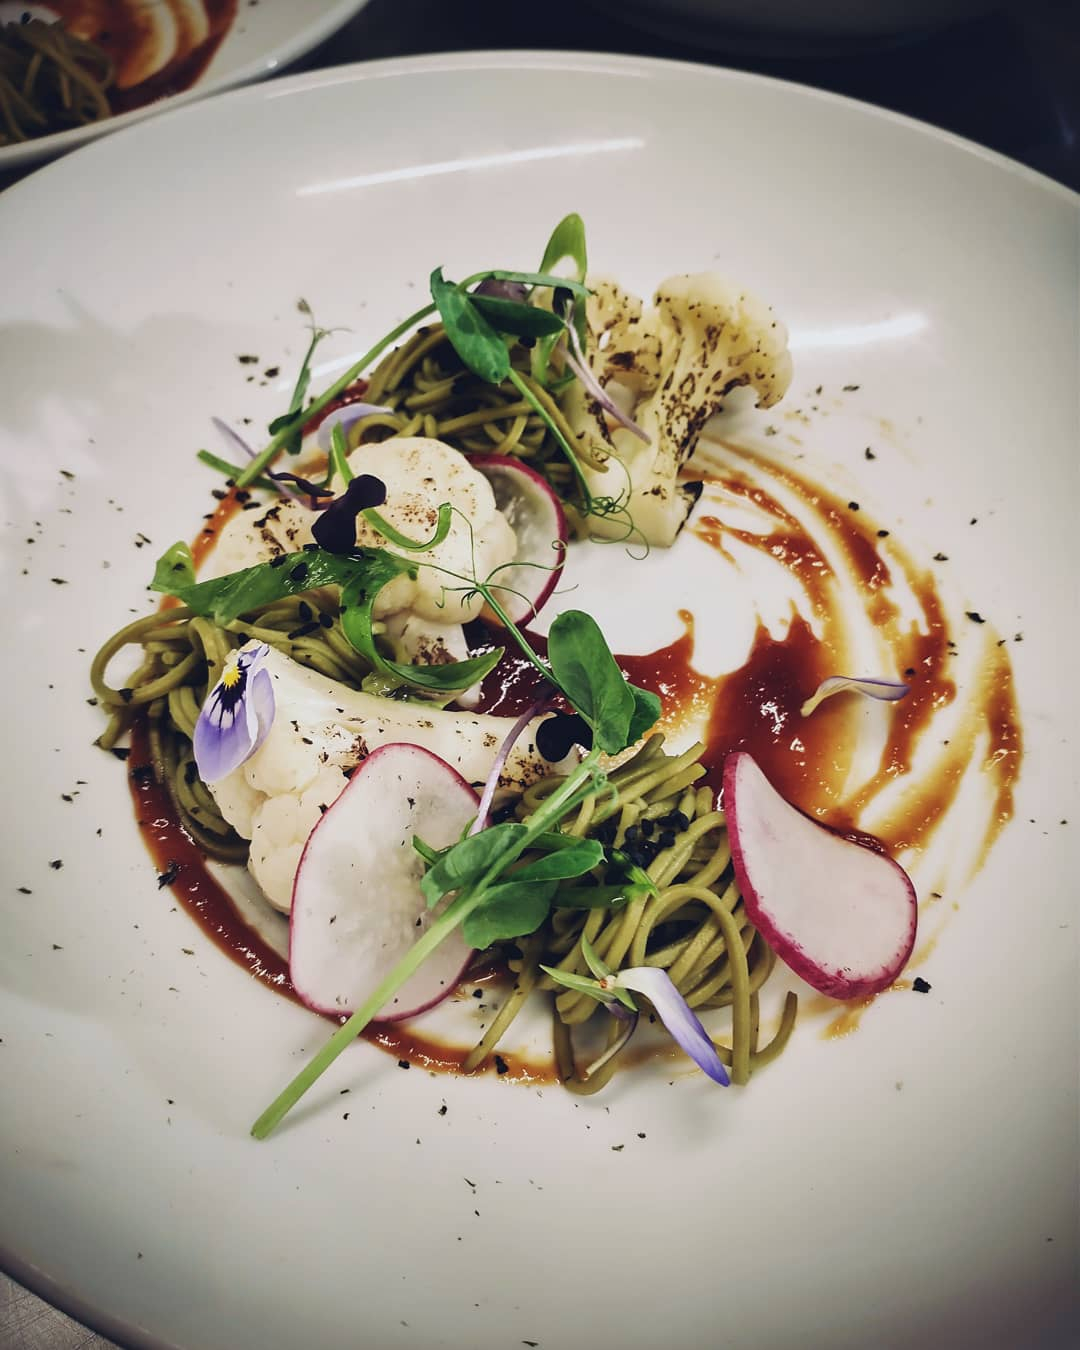 New entree Charred Cauli W/ caramelised misoGreen tea soba noodles